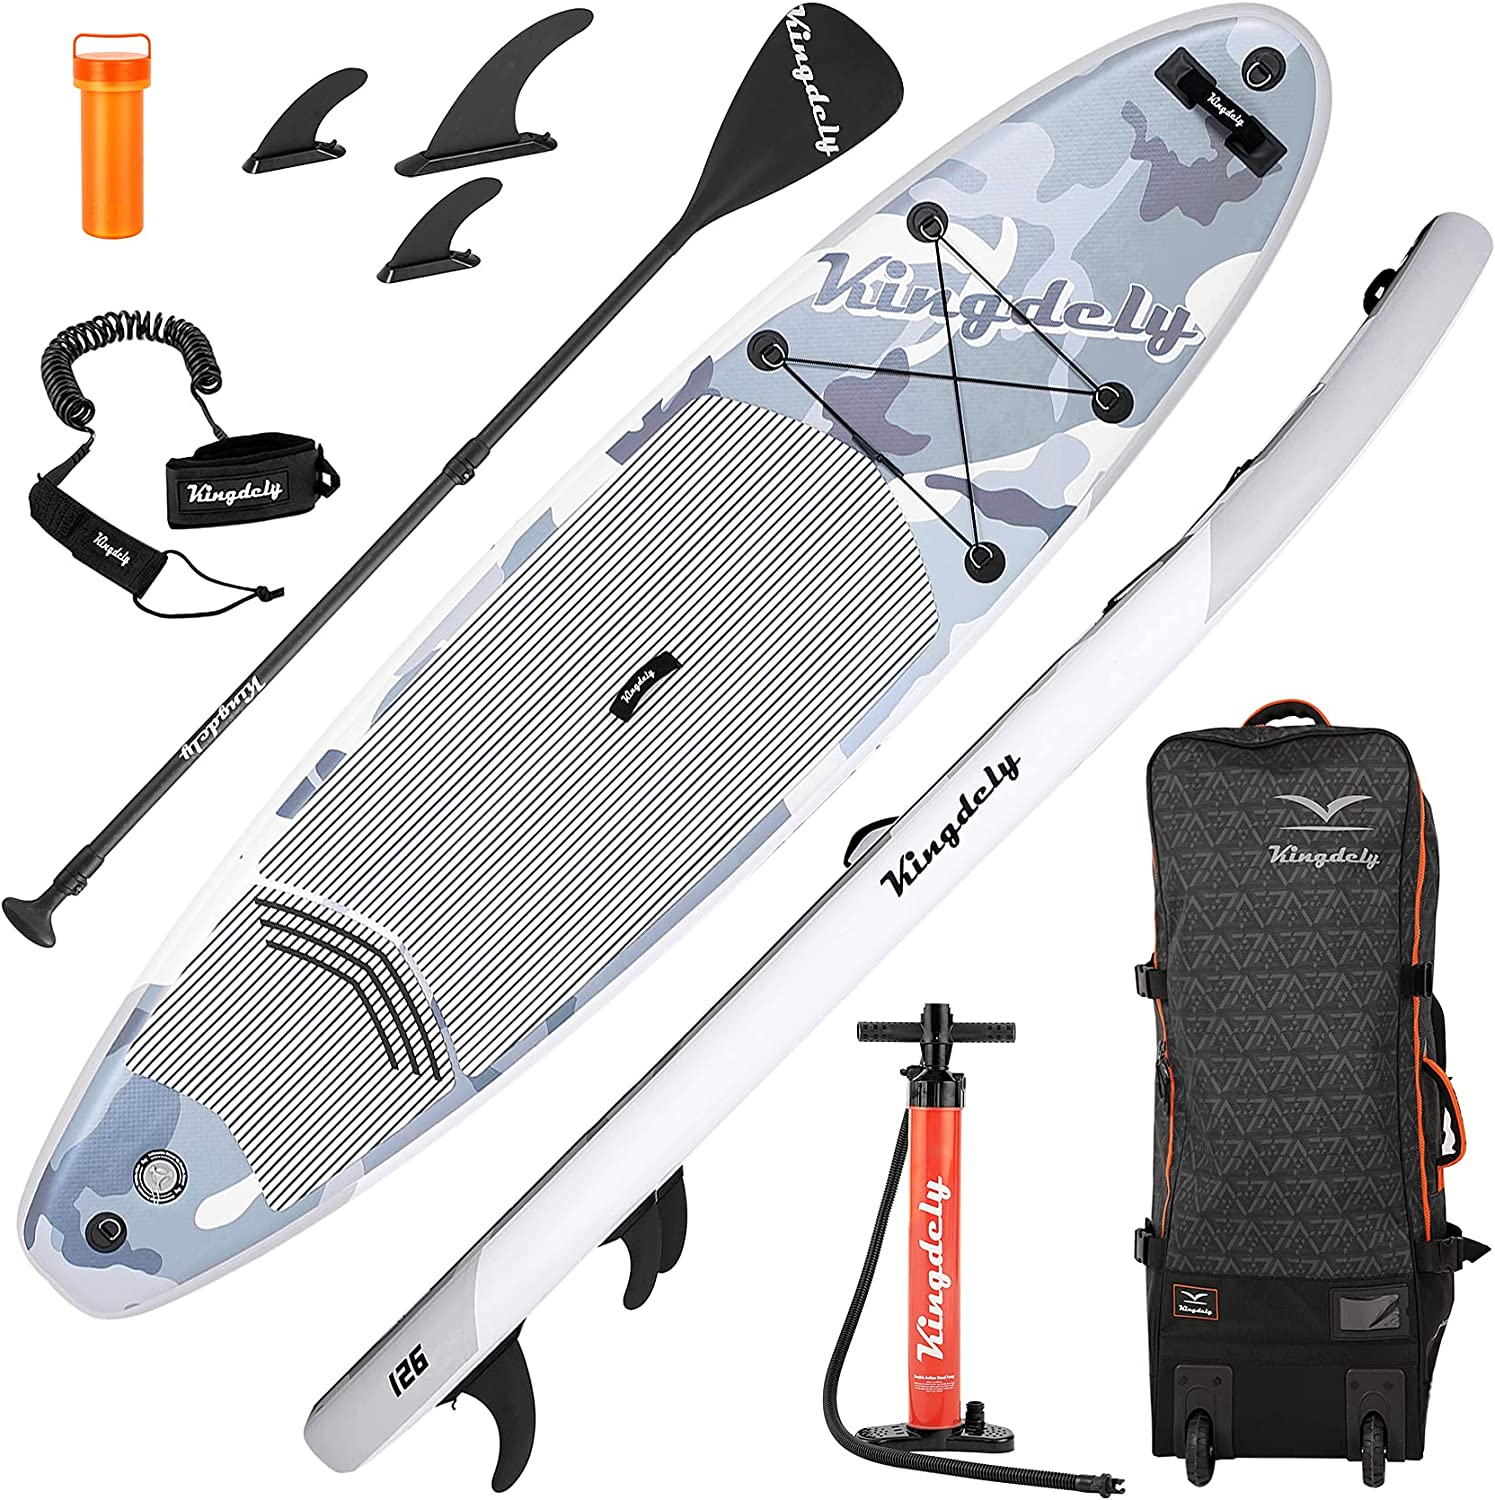 Upgraded 10'6 Inflatable Stand Up Paddleboards Paddle Max 68% OFF shopping Board wit